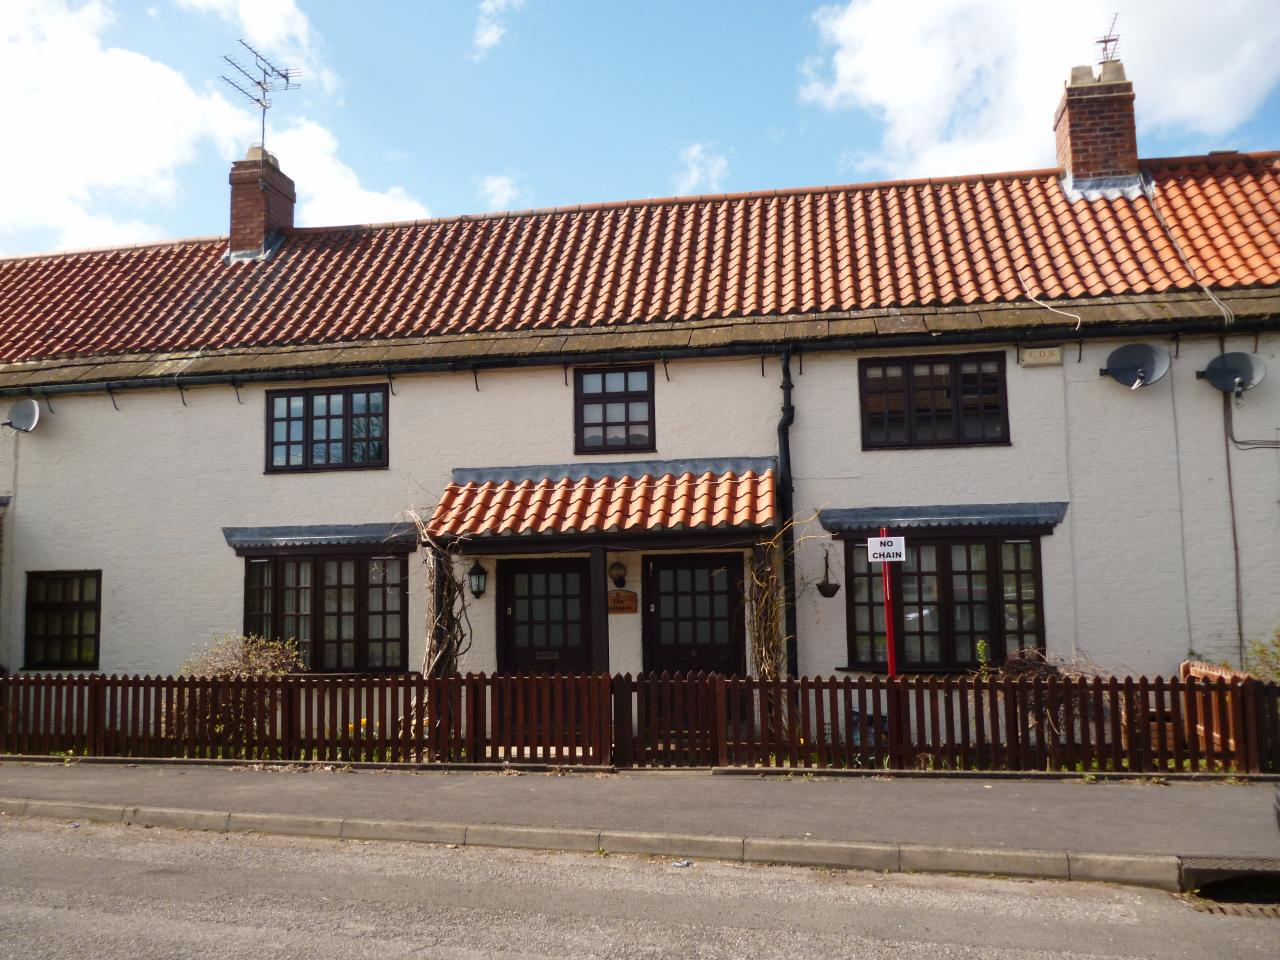 2 bedroom end terraced house Sale Agreed in Ferryhill - Photograph 1.